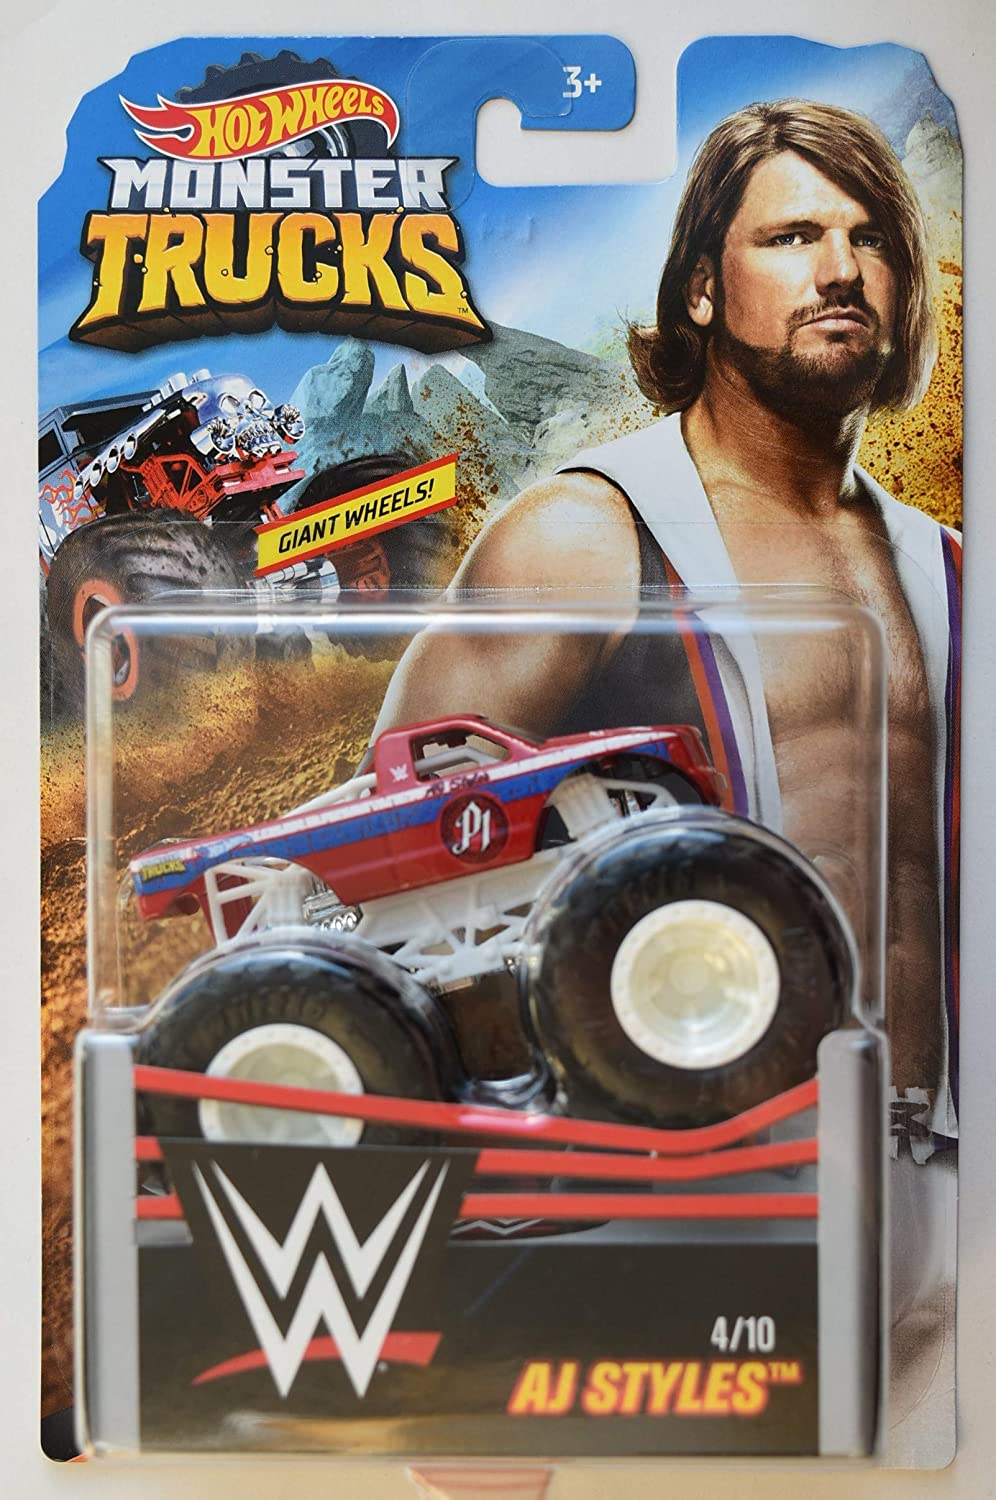 Amazon Com Hot Wheels Monster Trucks 1 64 Scale Aj Styles 4 10 Giant Wheels Toys Games